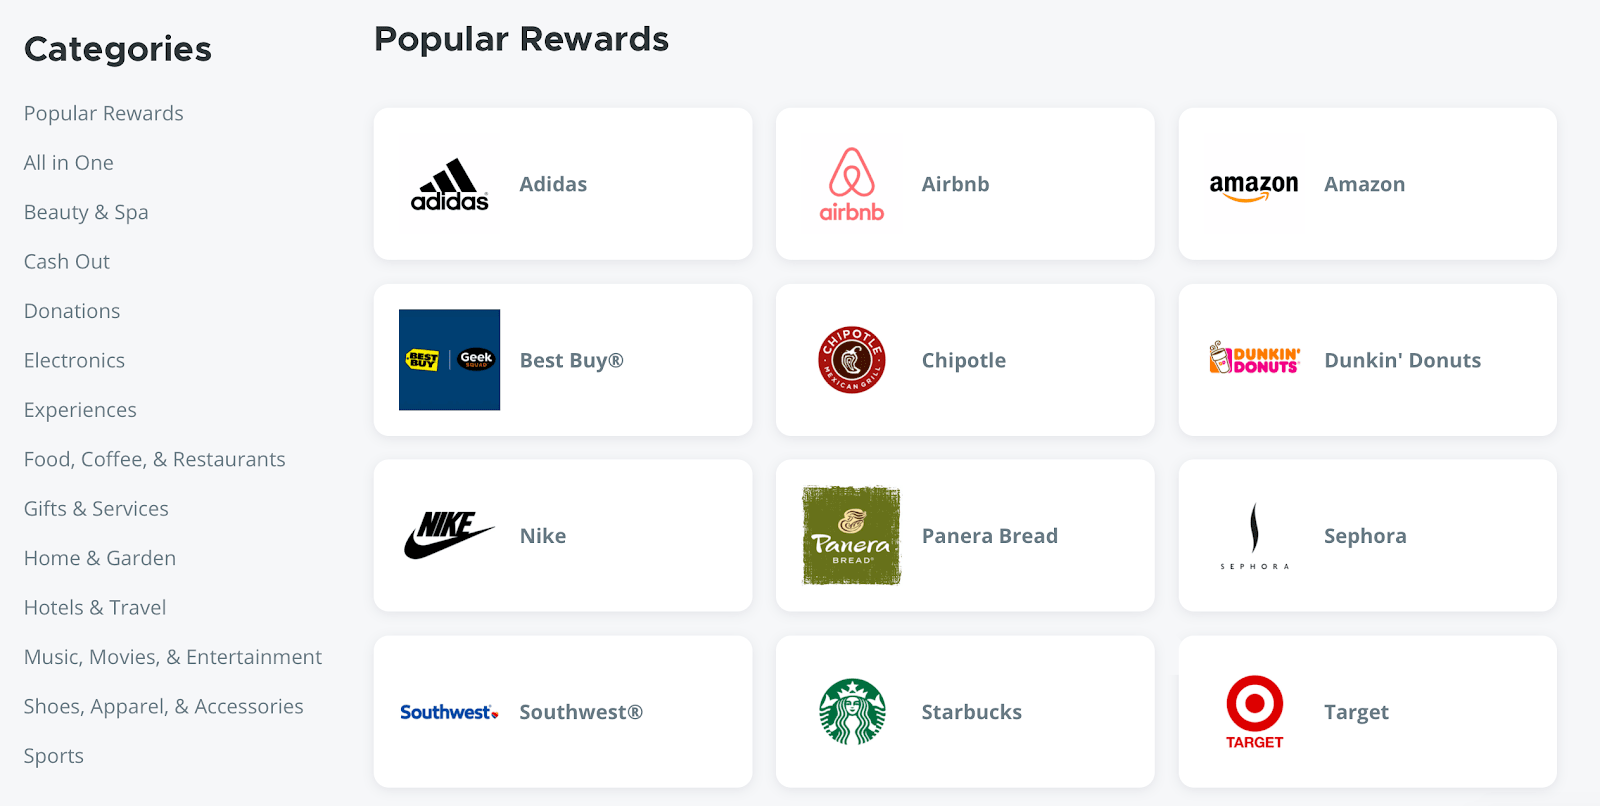 Bonusly rewards available for peer to peer recognition including Airbnb, Starbucks and Target